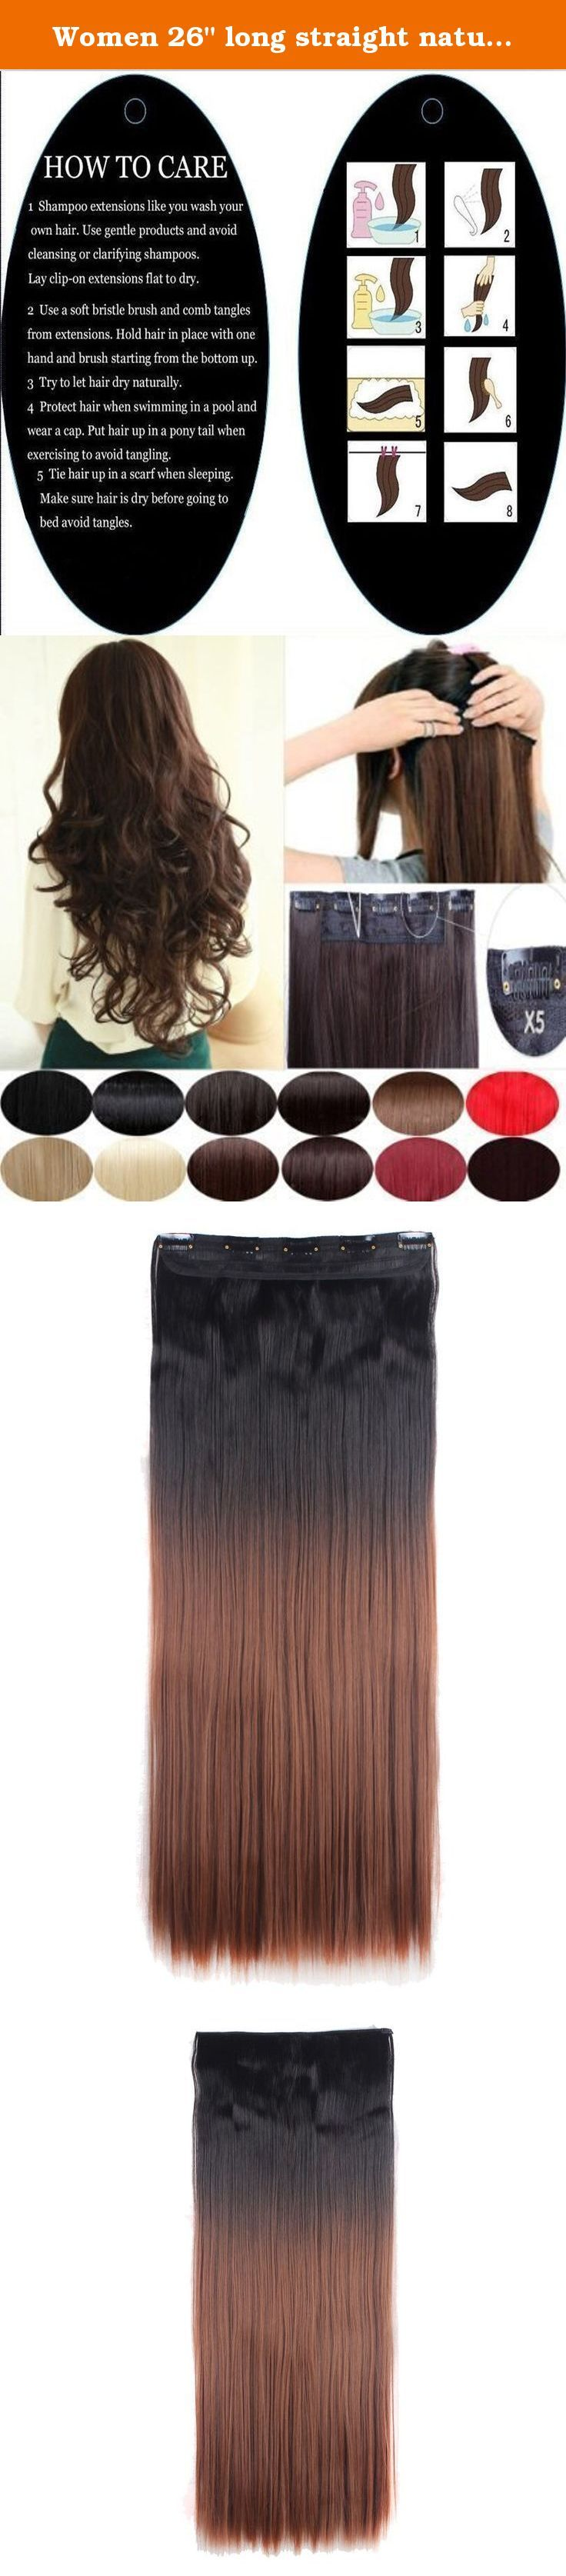 """Women 26"""" long straight natural black to auburn hair 1Pc with 5Clips 3/4 Full Head In Hair Extension. Synthetic fiber moves and feels like real human hair. This is Most affordable price and very easy to apply. Several pressure sensitive clips make attaching quick and easy. The best hair extension shopping options based on the price compare to real human hair extensions. Also the best choice for short term or entry level using. Clips opening and closing instructions: With the clip side of…"""